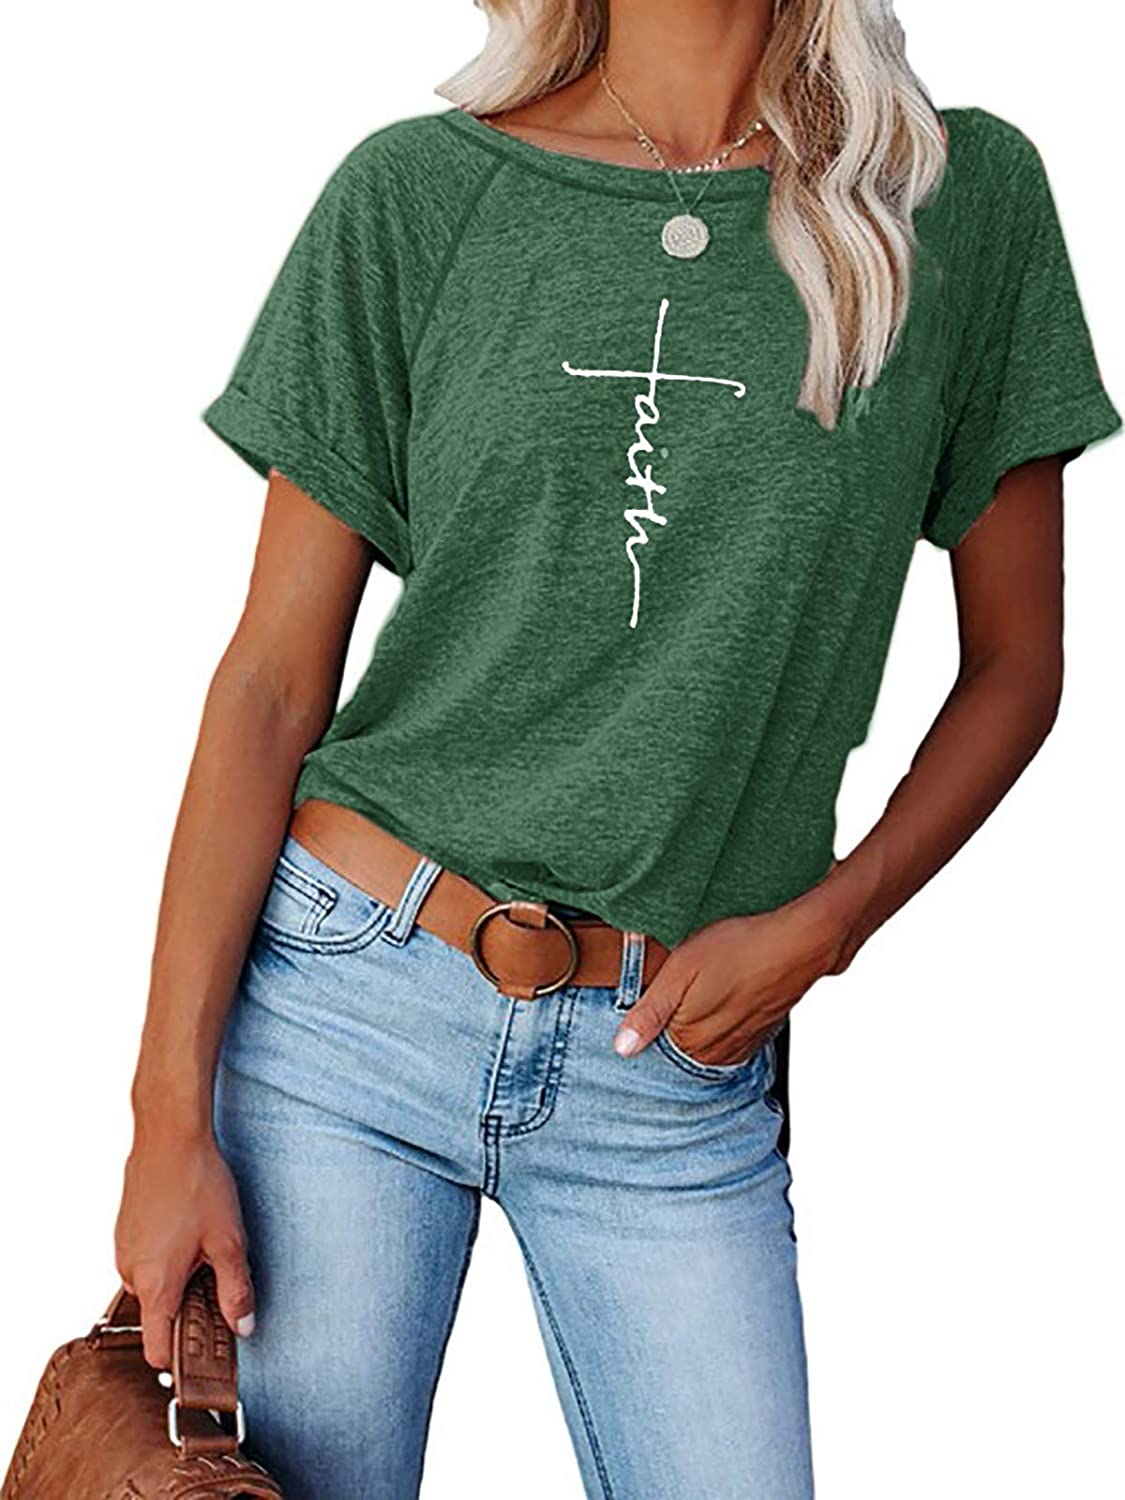 Womens Be Kind/Faith Graphic Short Sleeve T Shirts Cotton Casual Oversized Summer Crew Neck Tunic Top